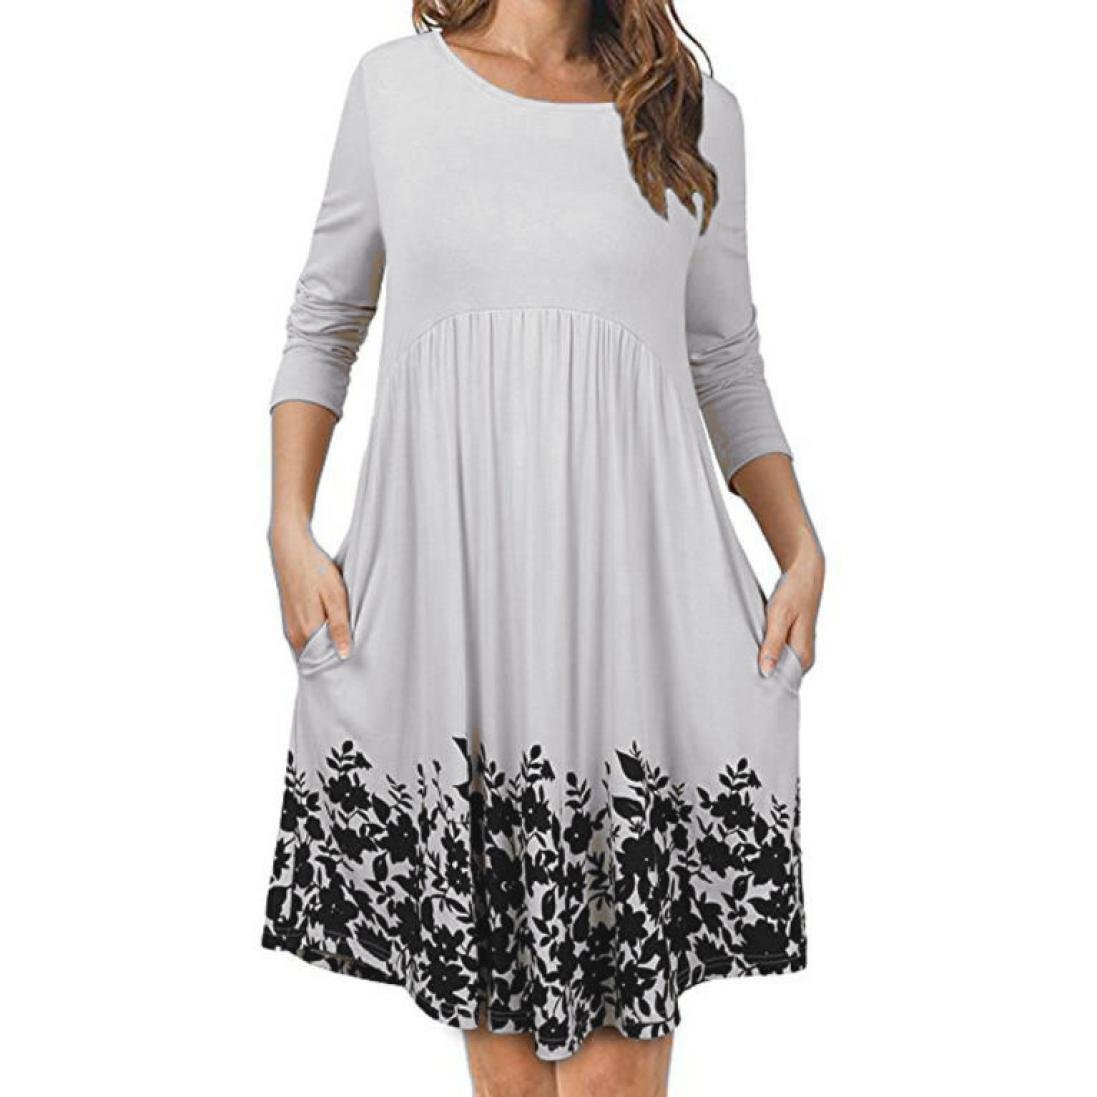 9804abb0692a Oksale Women s T Shirt Dress with Pockets Long Sleeve Floral Pleated Swing  Dress  Amazon.in  Clothing   Accessories